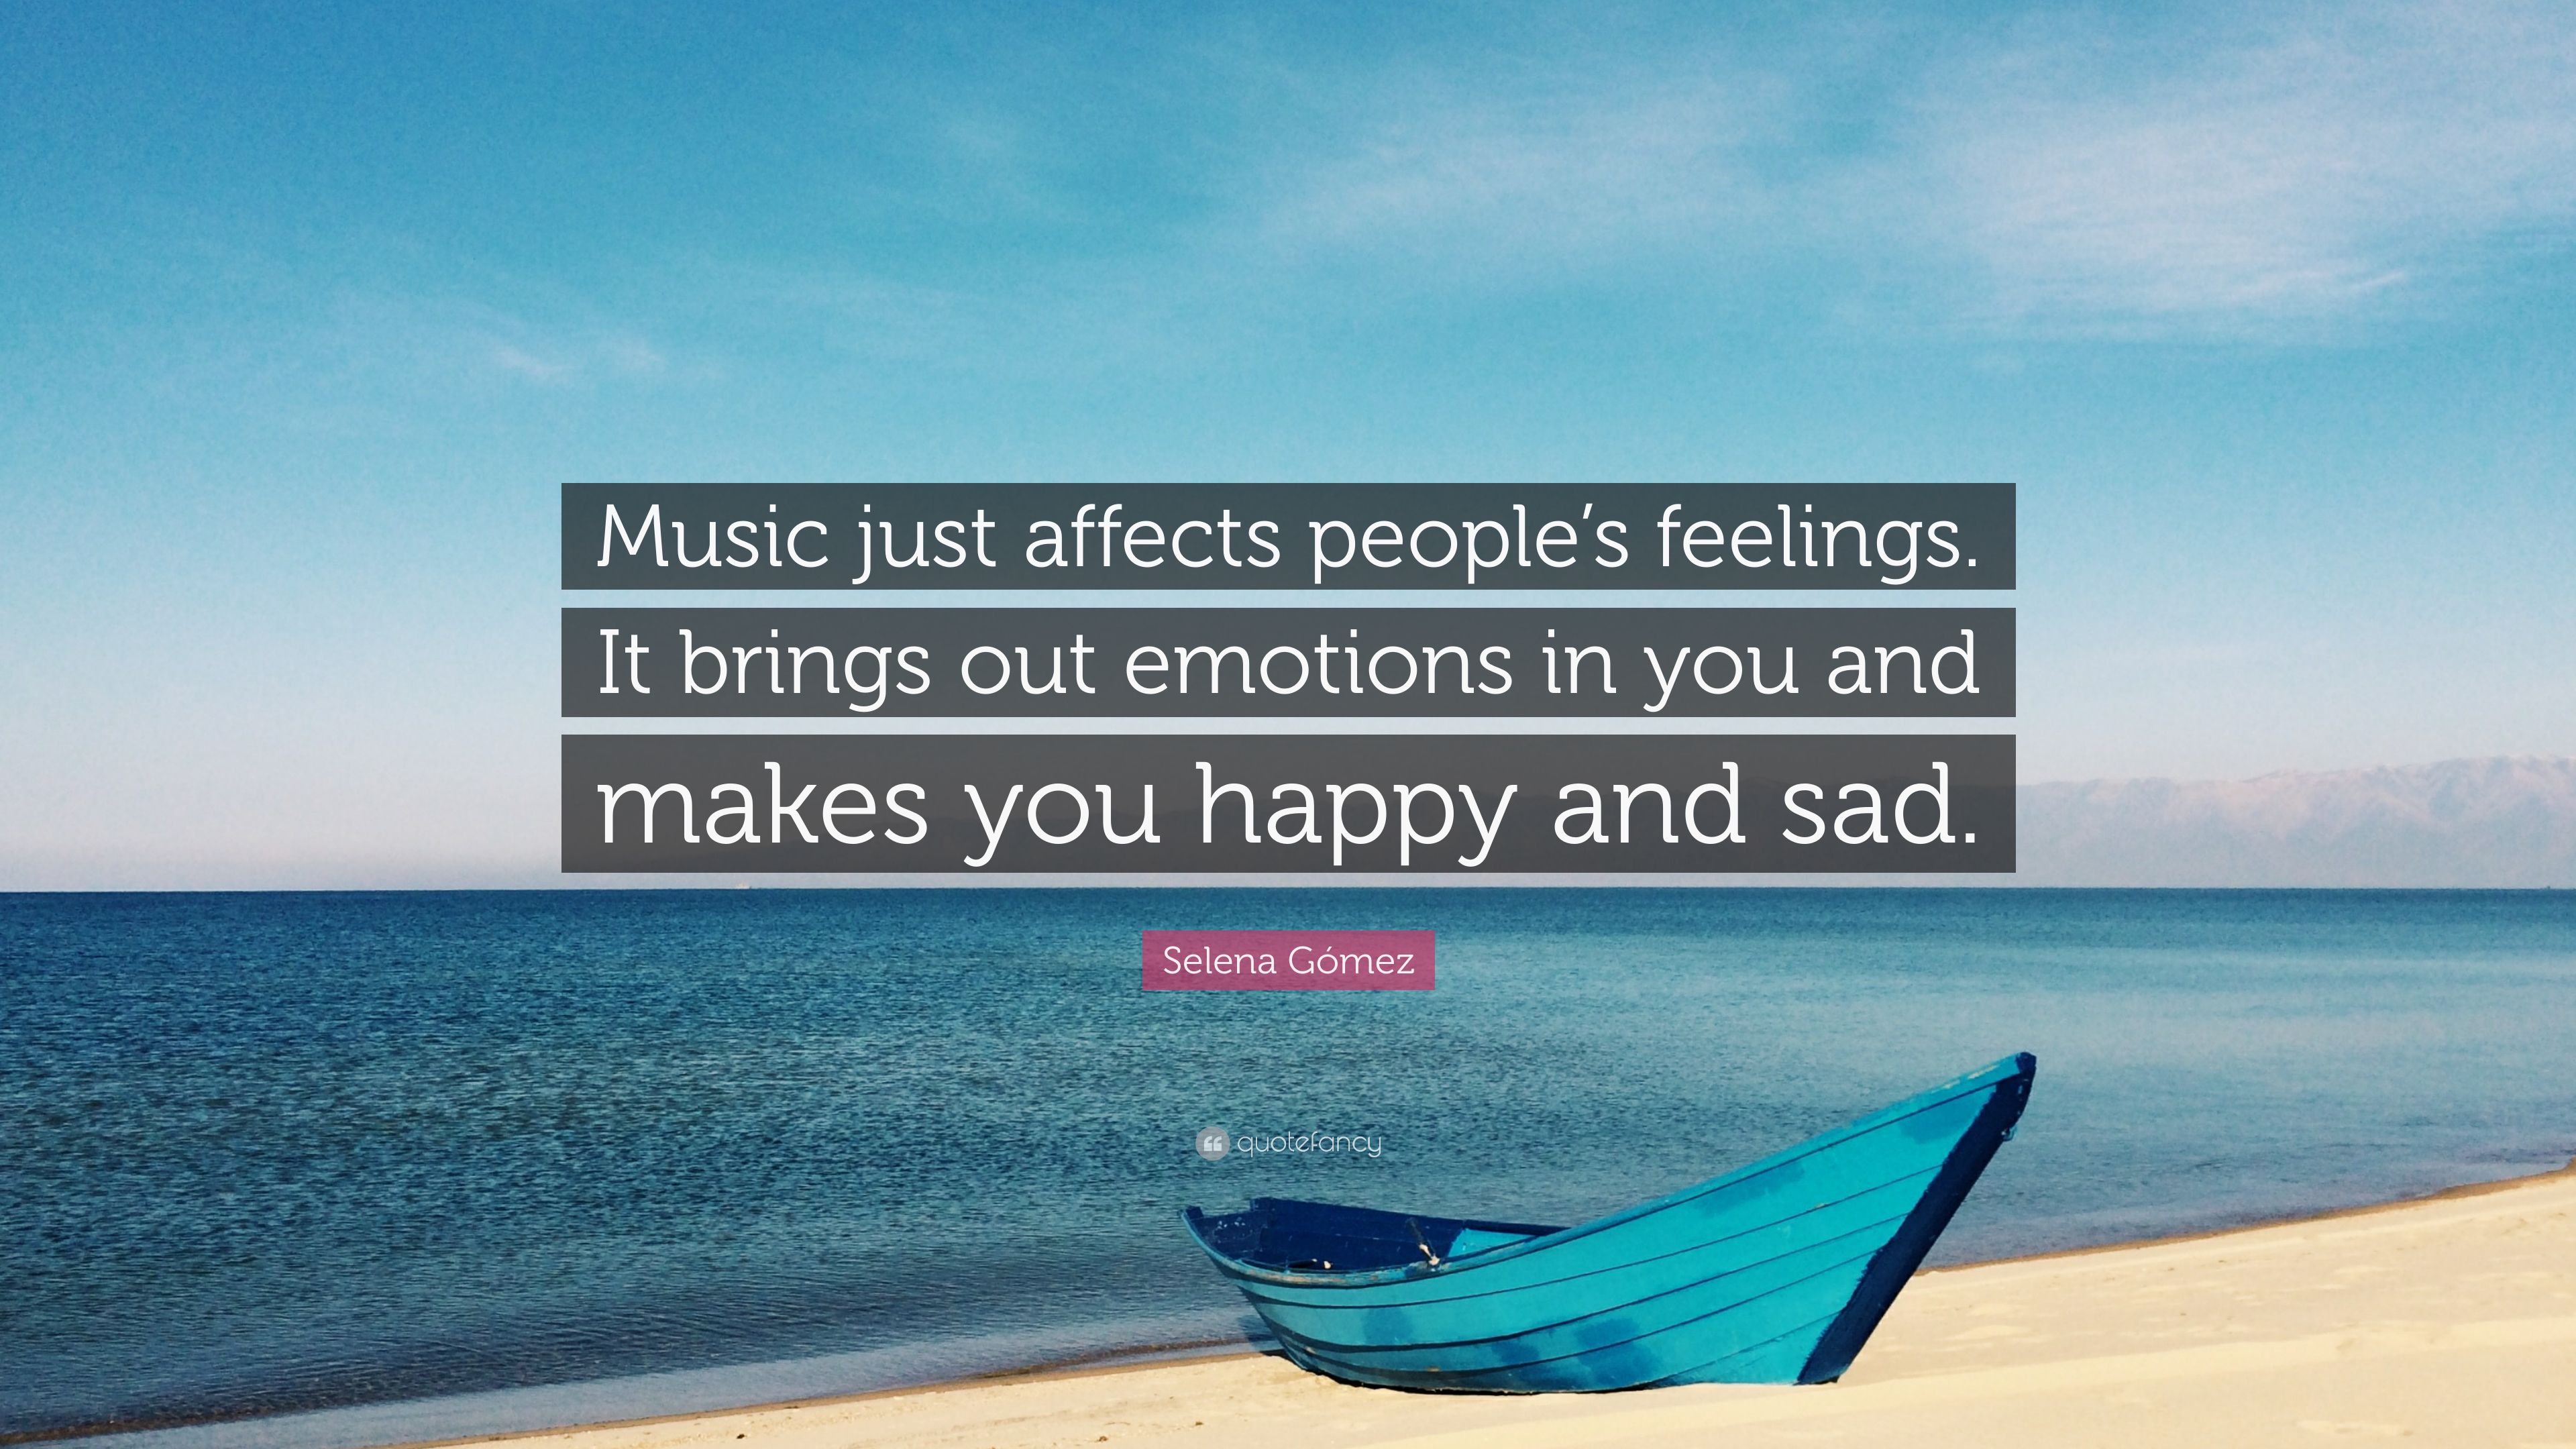 bringing forth a persons feelings and emotions through music The core of arousal theories is that music has properties capable of arousing emotions or feelings in and our emotions 66 this connection is due to the symbolization in which music may, by bringing emotions to related to the other through someone's mental act.